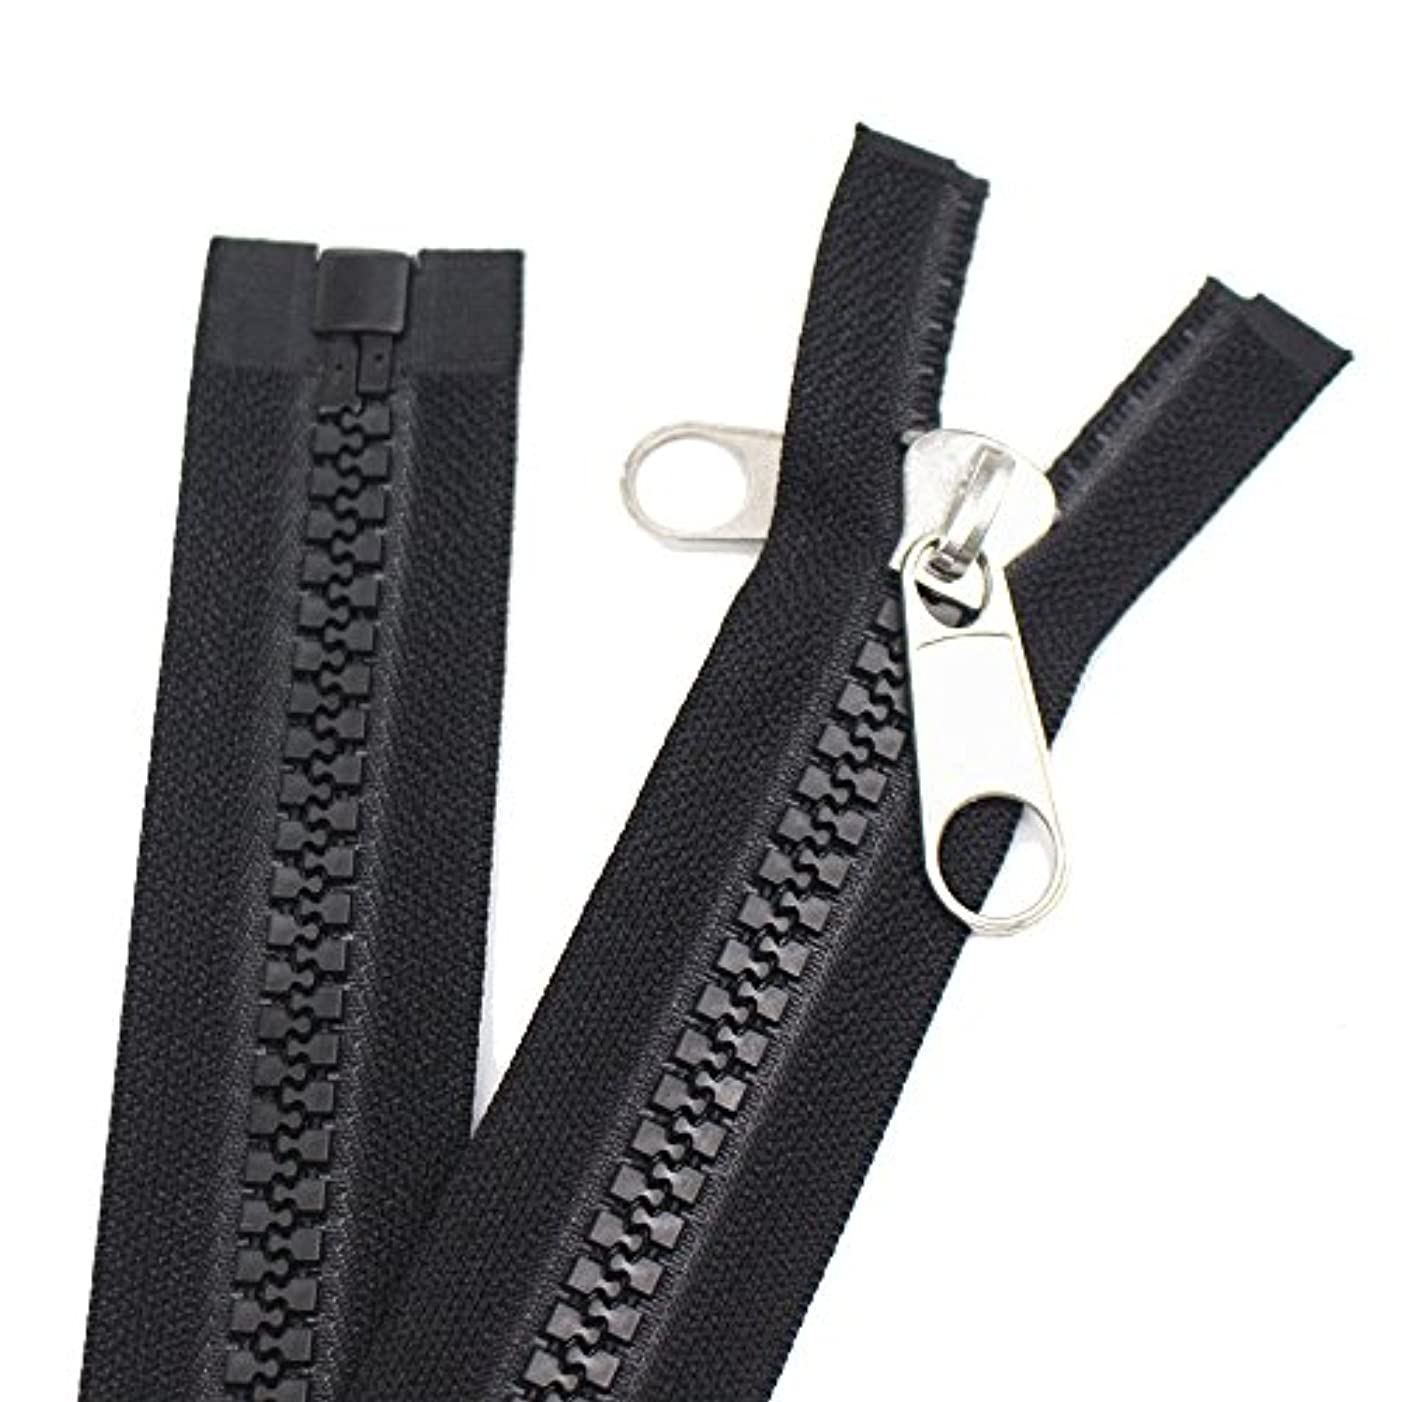 Meillia Zipper 106 inch, Black, 10# Seperating Plastic Zipper, Double Silver Pulls, Large Long Vislon Zipper for Sewing Sleeping Bags Boat Canvas Cover Tents (106